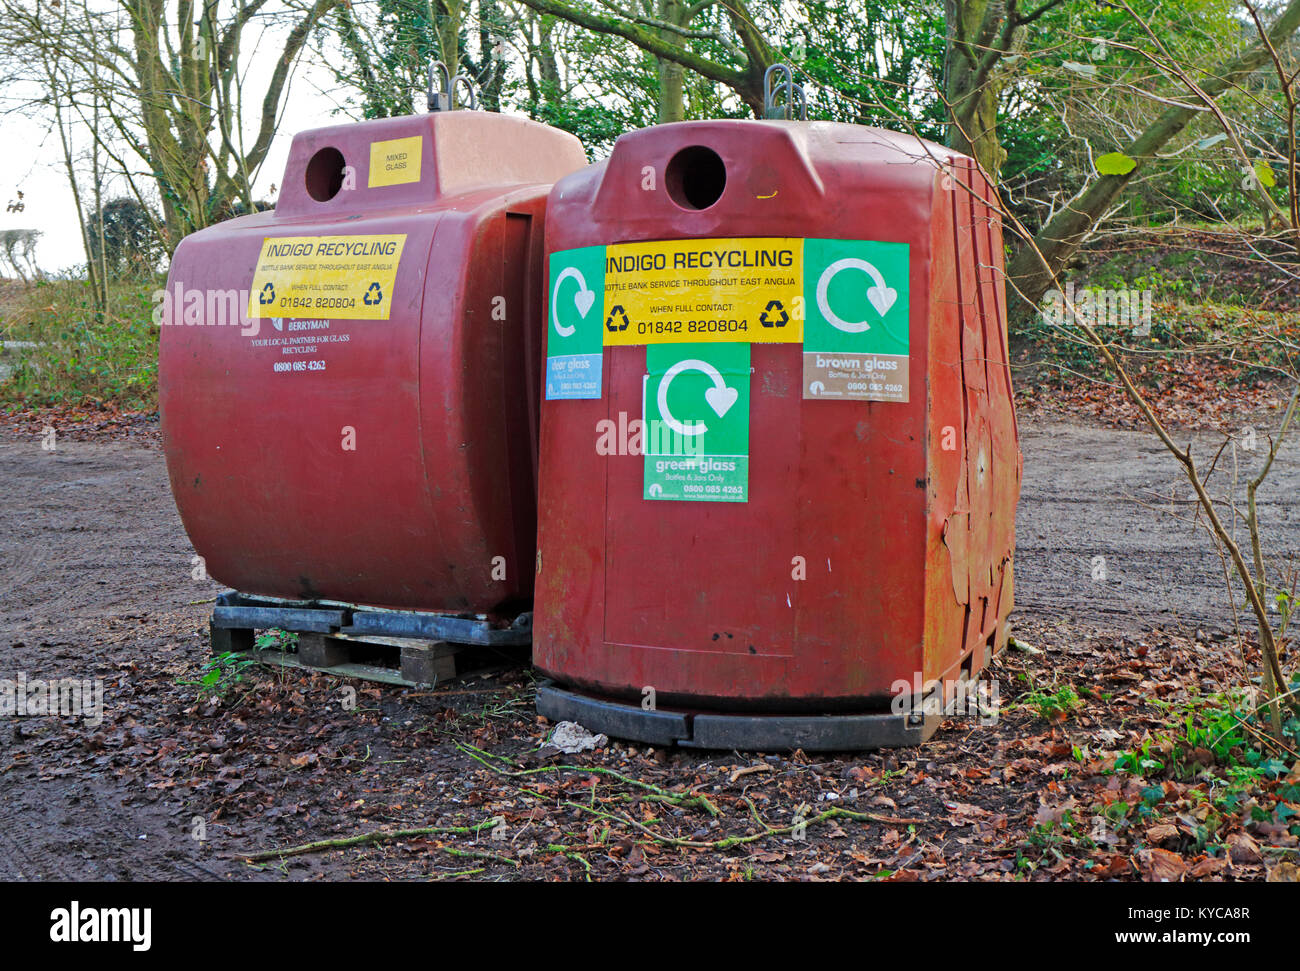 Two glass recycling bins in a public car park at Salhouse, Norfolk, England, United Kingdom, Europe. Stock Photo